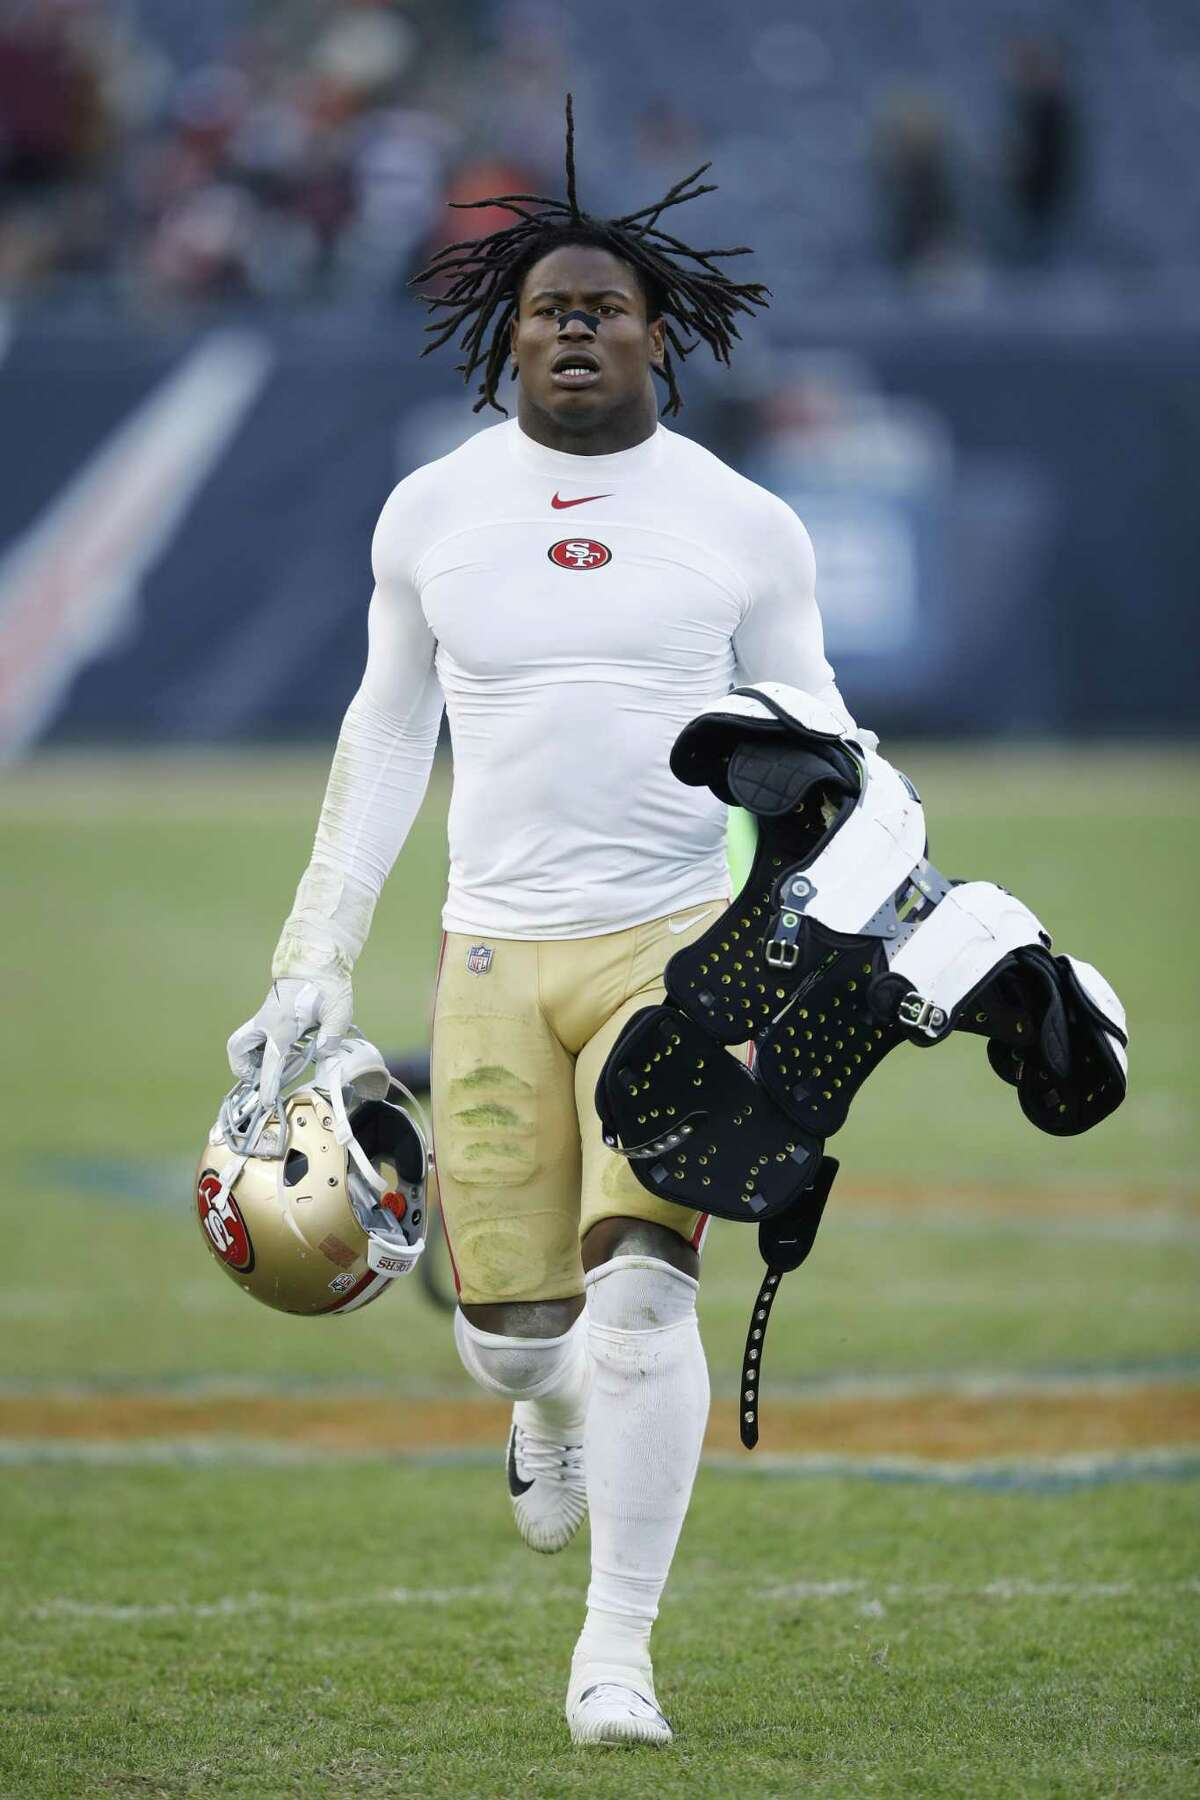 CHICAGO, IL - DECEMBER 03: Reuben Foster #56 of the San Francisco 49ers looks on after a game against the Chicago Bears at Soldier Field on December 3, 2017 in Chicago, Illinois. The 49ers won 15-14. (Photo by Joe Robbins/Getty Images)